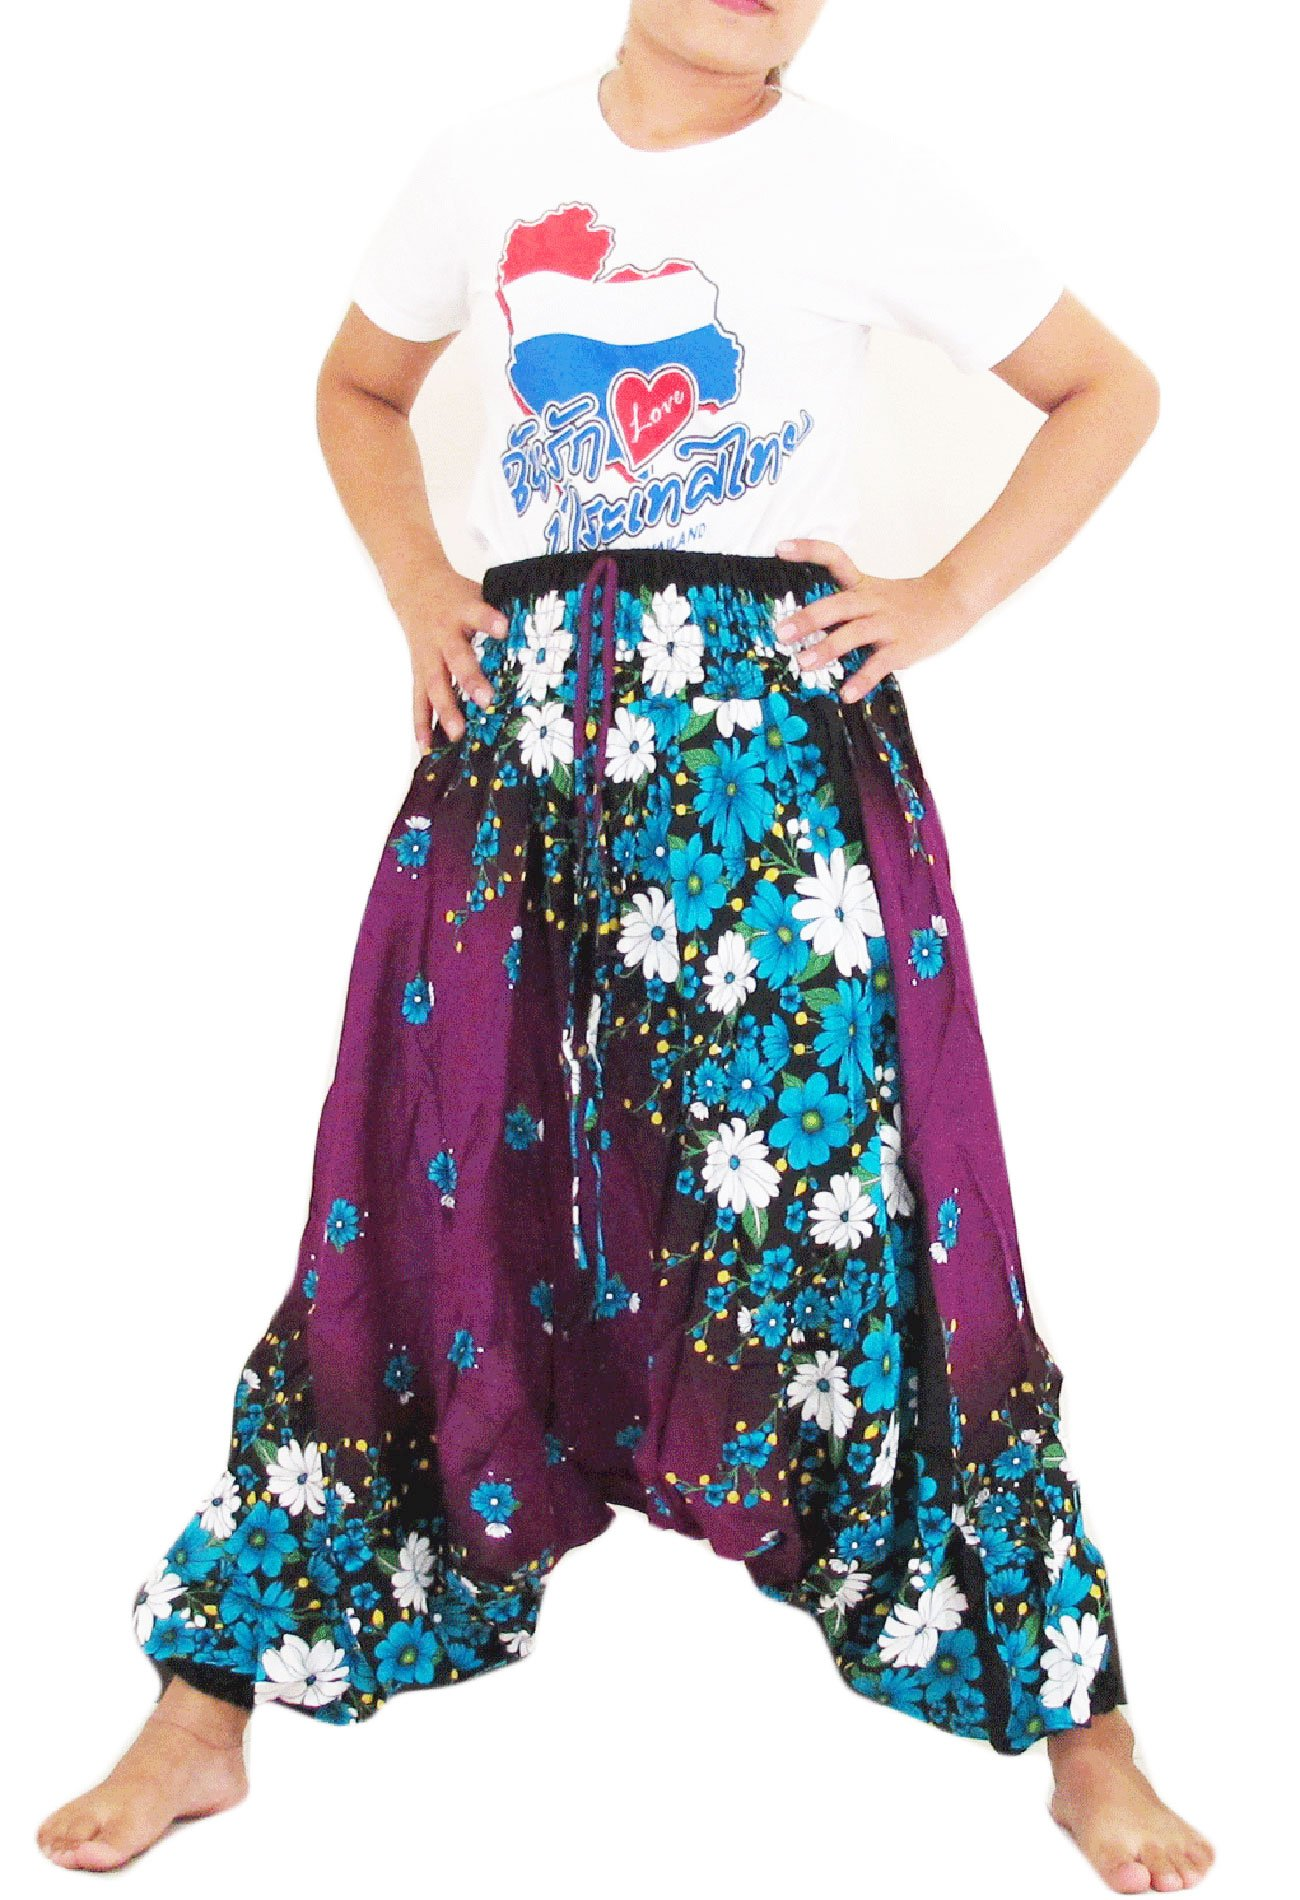 ''HIT HOT'' ''BEAUTIFUL FLOWER HILL TRIBE STYLE GENUINE RAYON